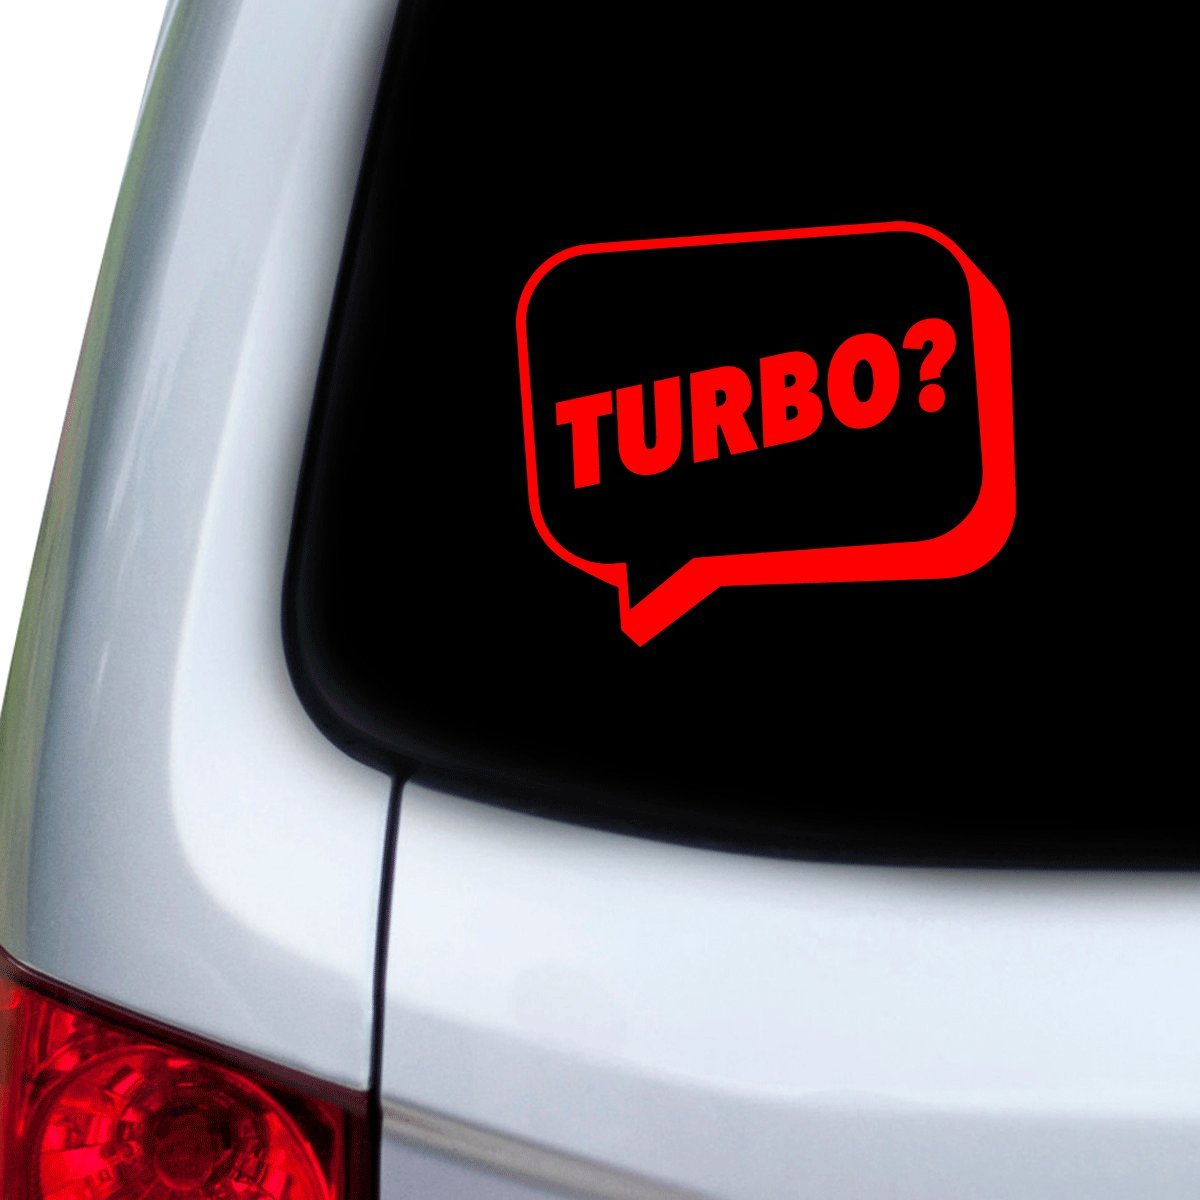 StickAny Car and Auto Decal Series Turbo? Speech Bubble Sticker for Windows Doors Hoods Red